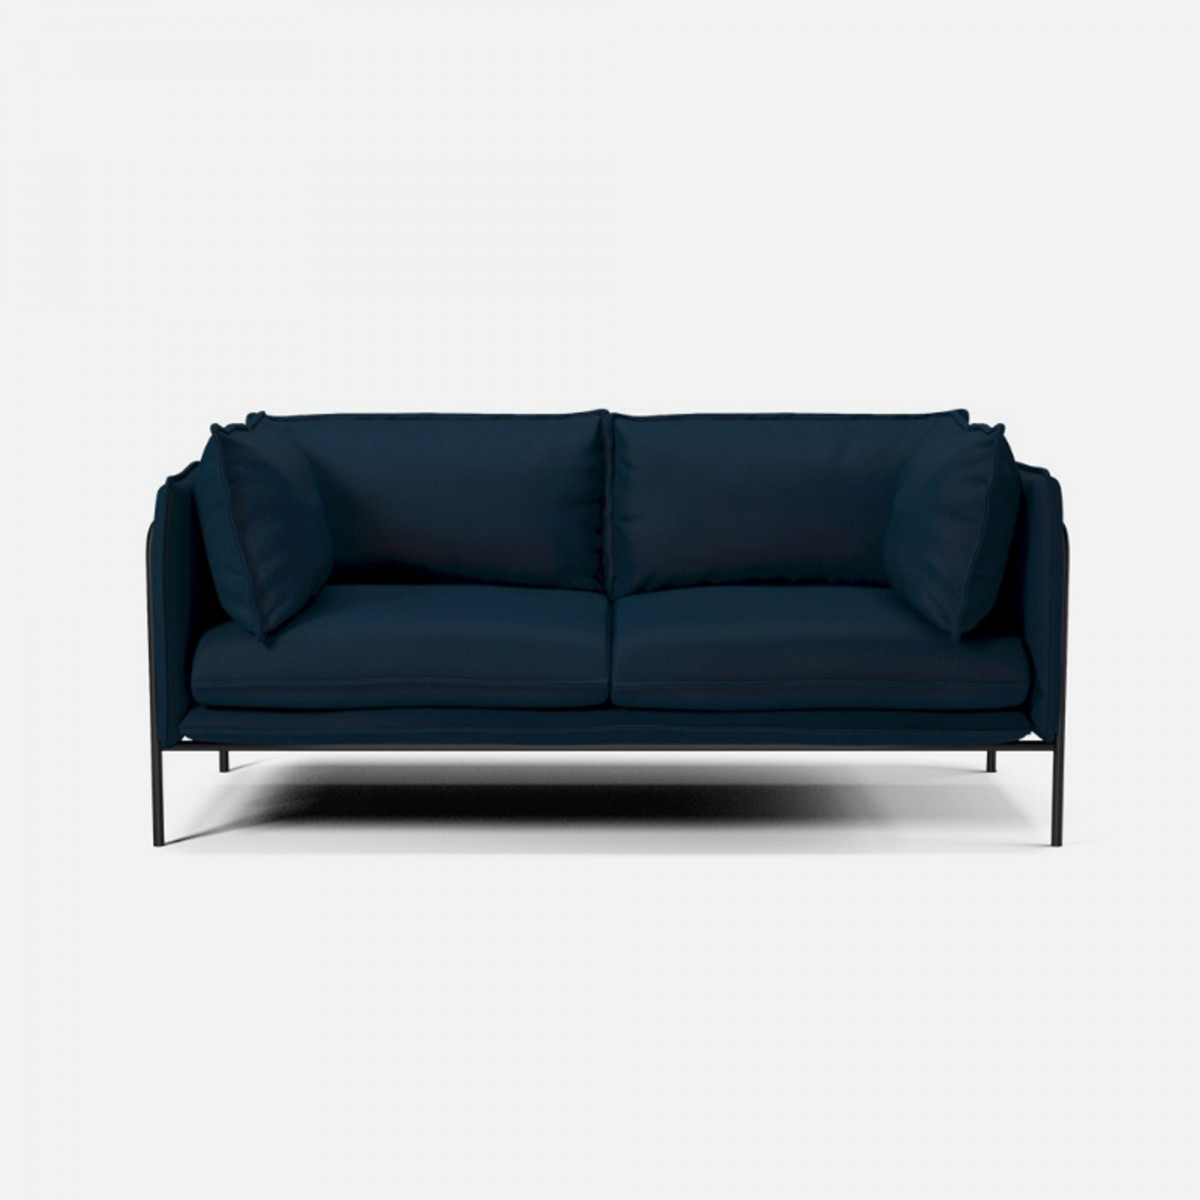 Pepe sofa 2 seats bolia for Bolia sofa